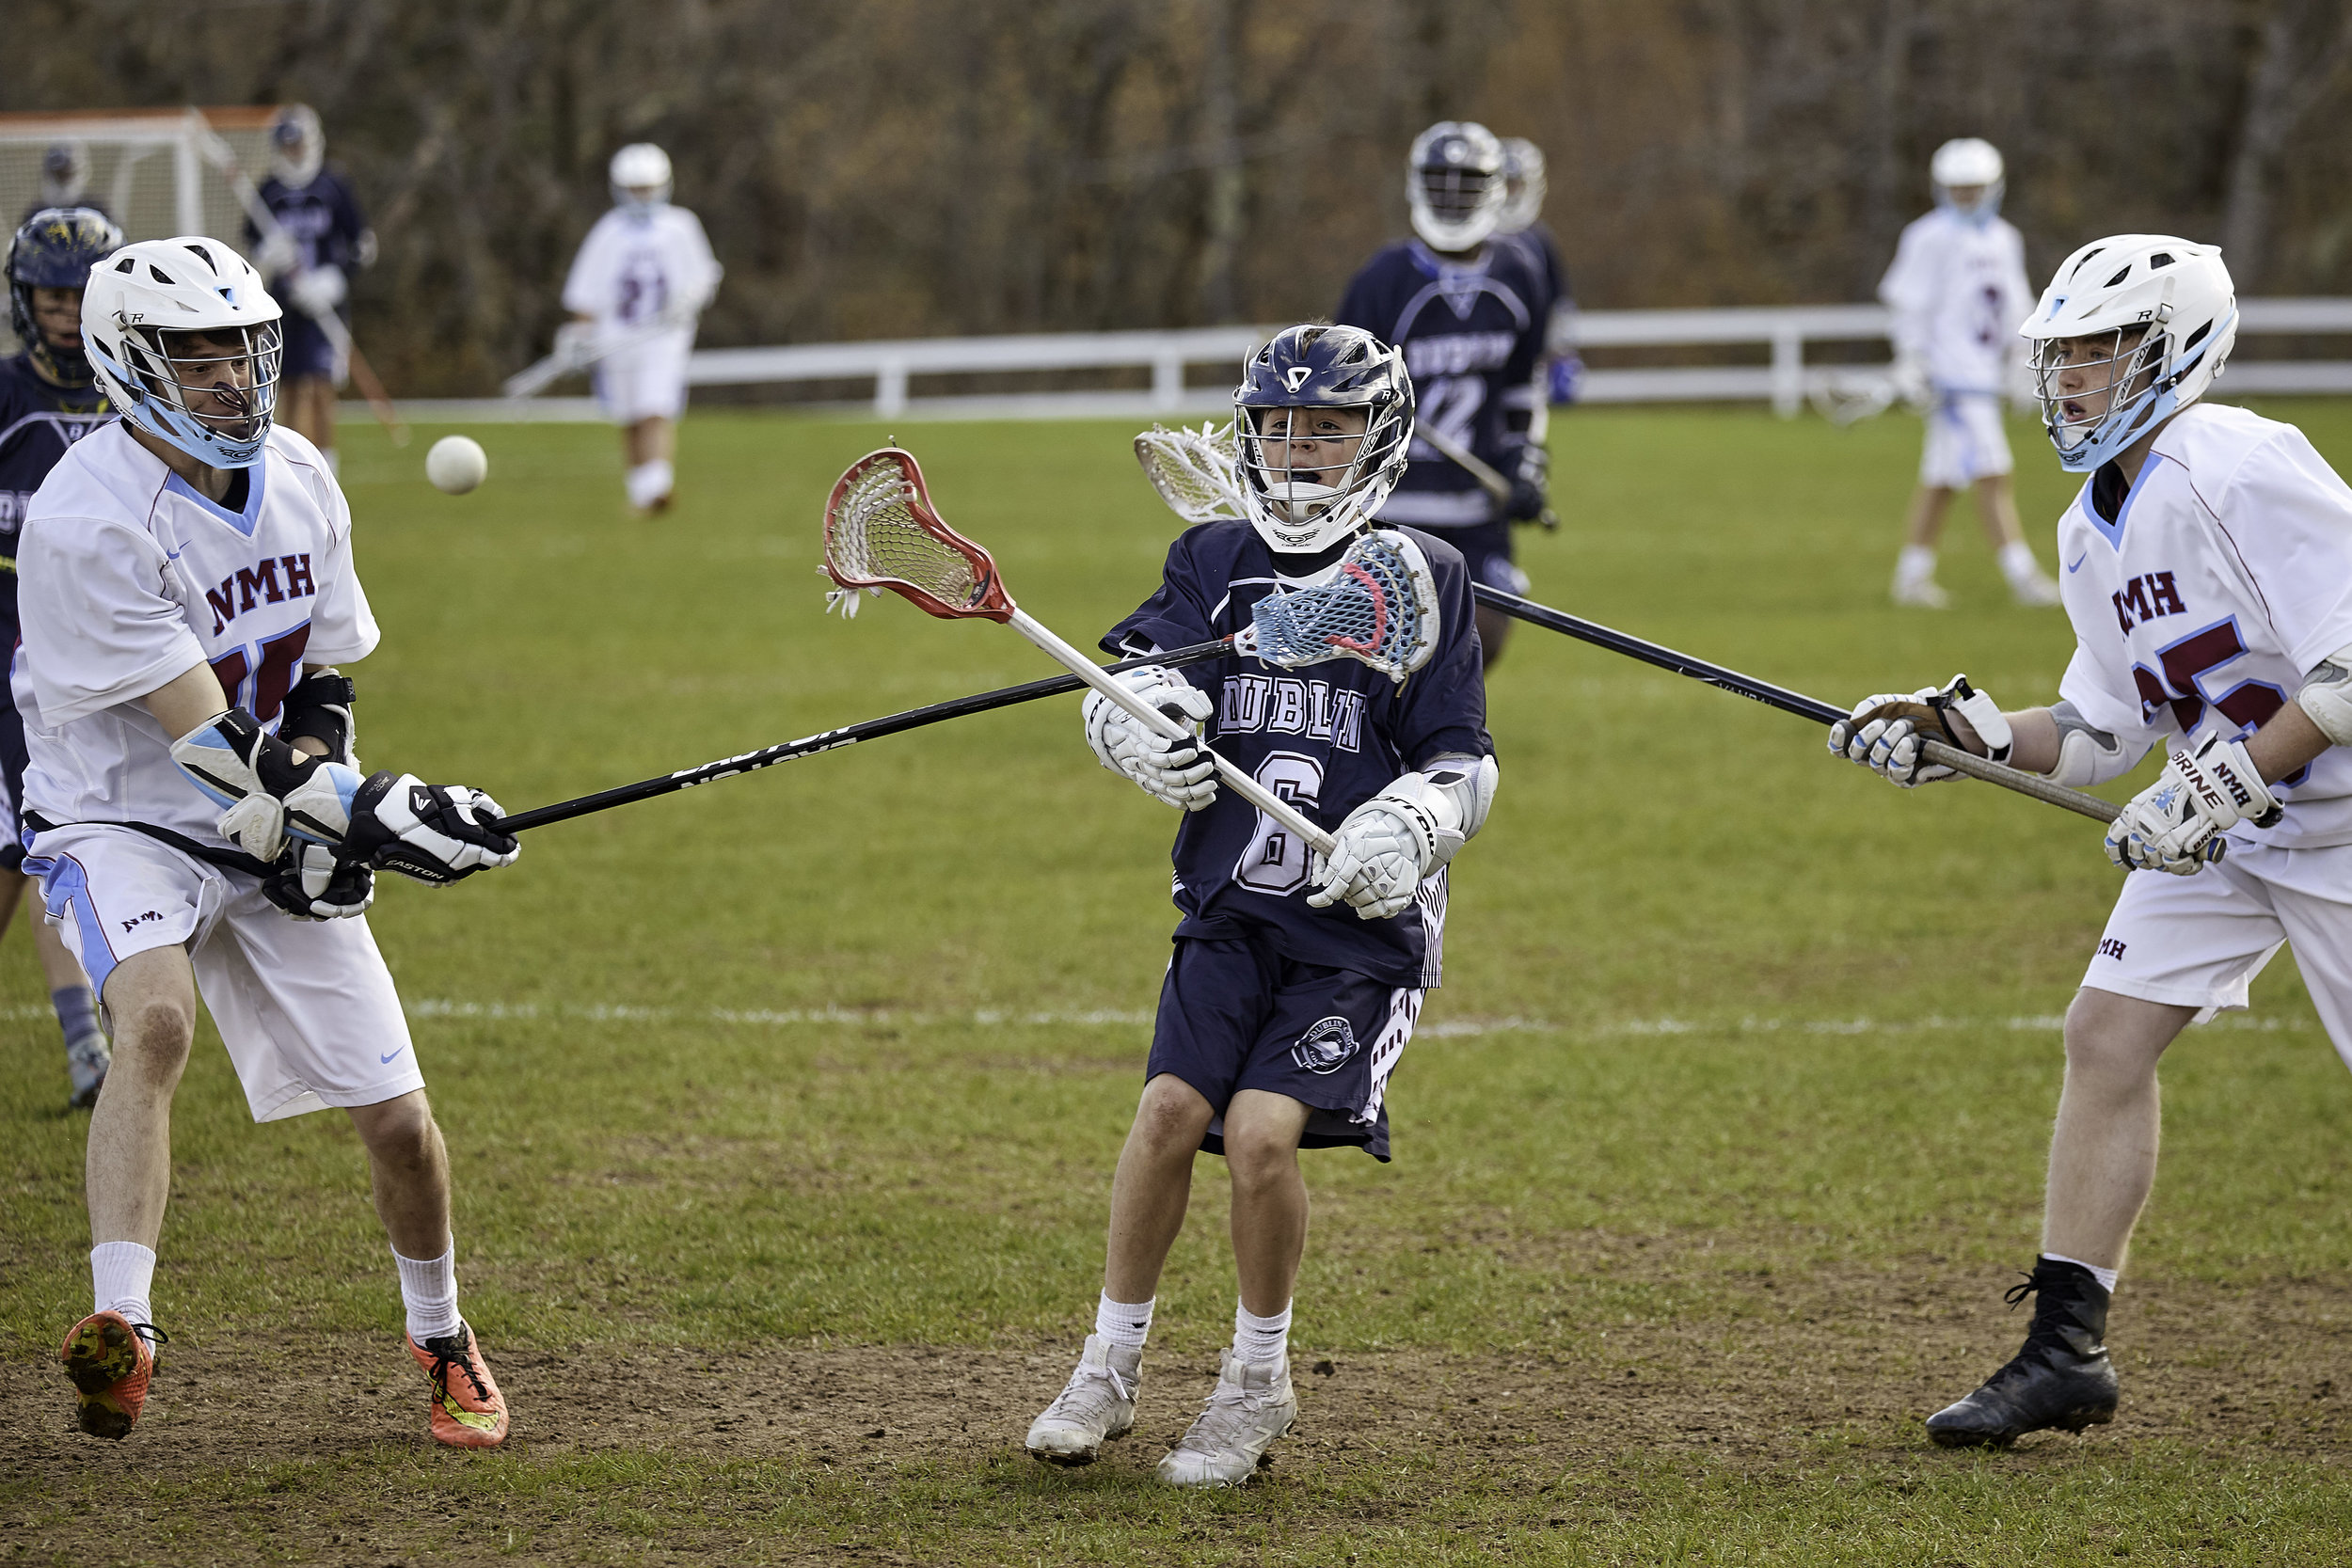 Boys Lax vs Northfield Mount Hermon JV - May 15 2019 - 0068.jpg